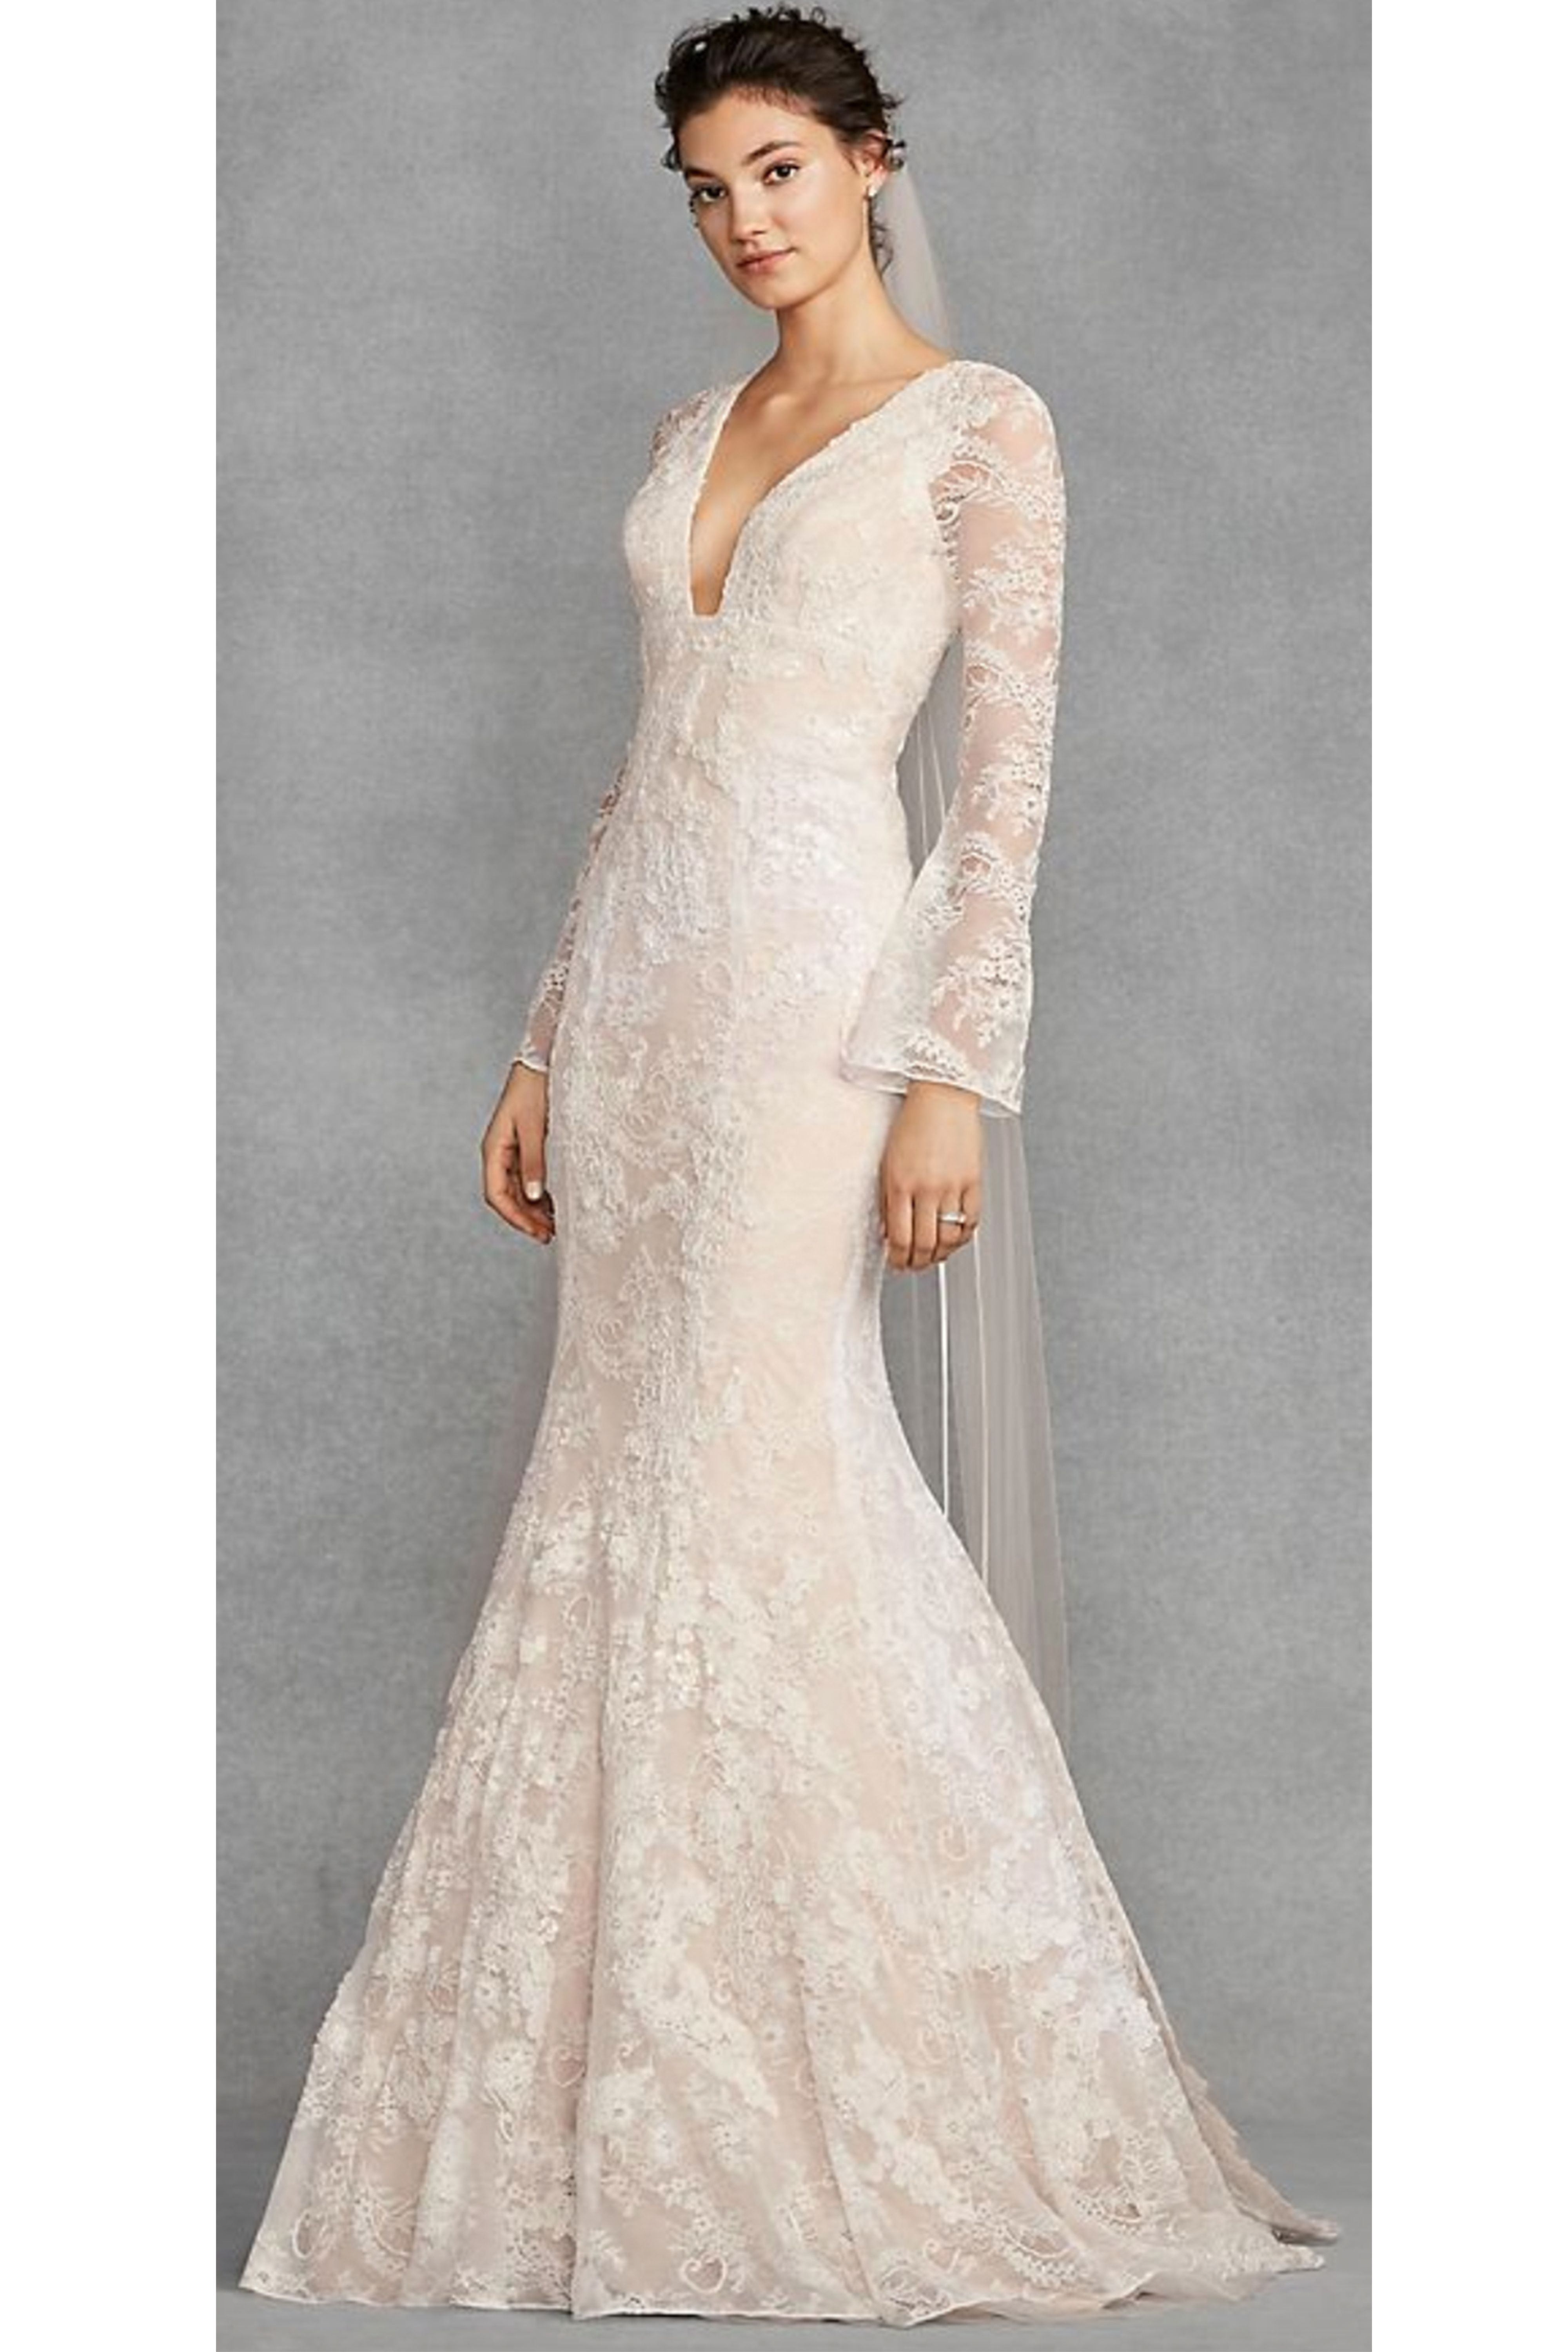 14 Long Sleeve Wedding Dresses Designer Wedding Gowns With Sleeves